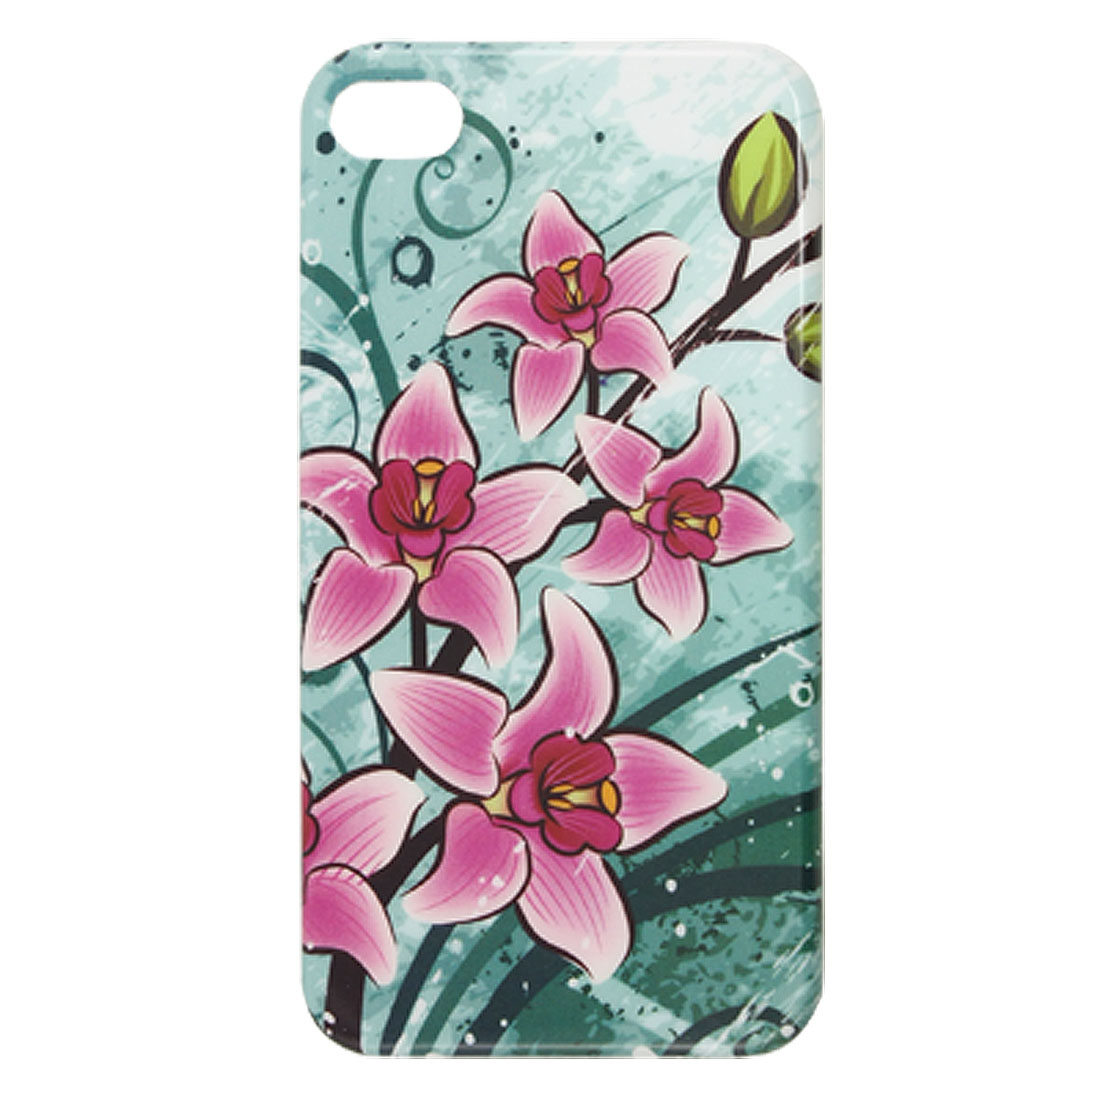 IMD Purple Flowers Green Plastic Back Case for iPhone 4 4G 4S